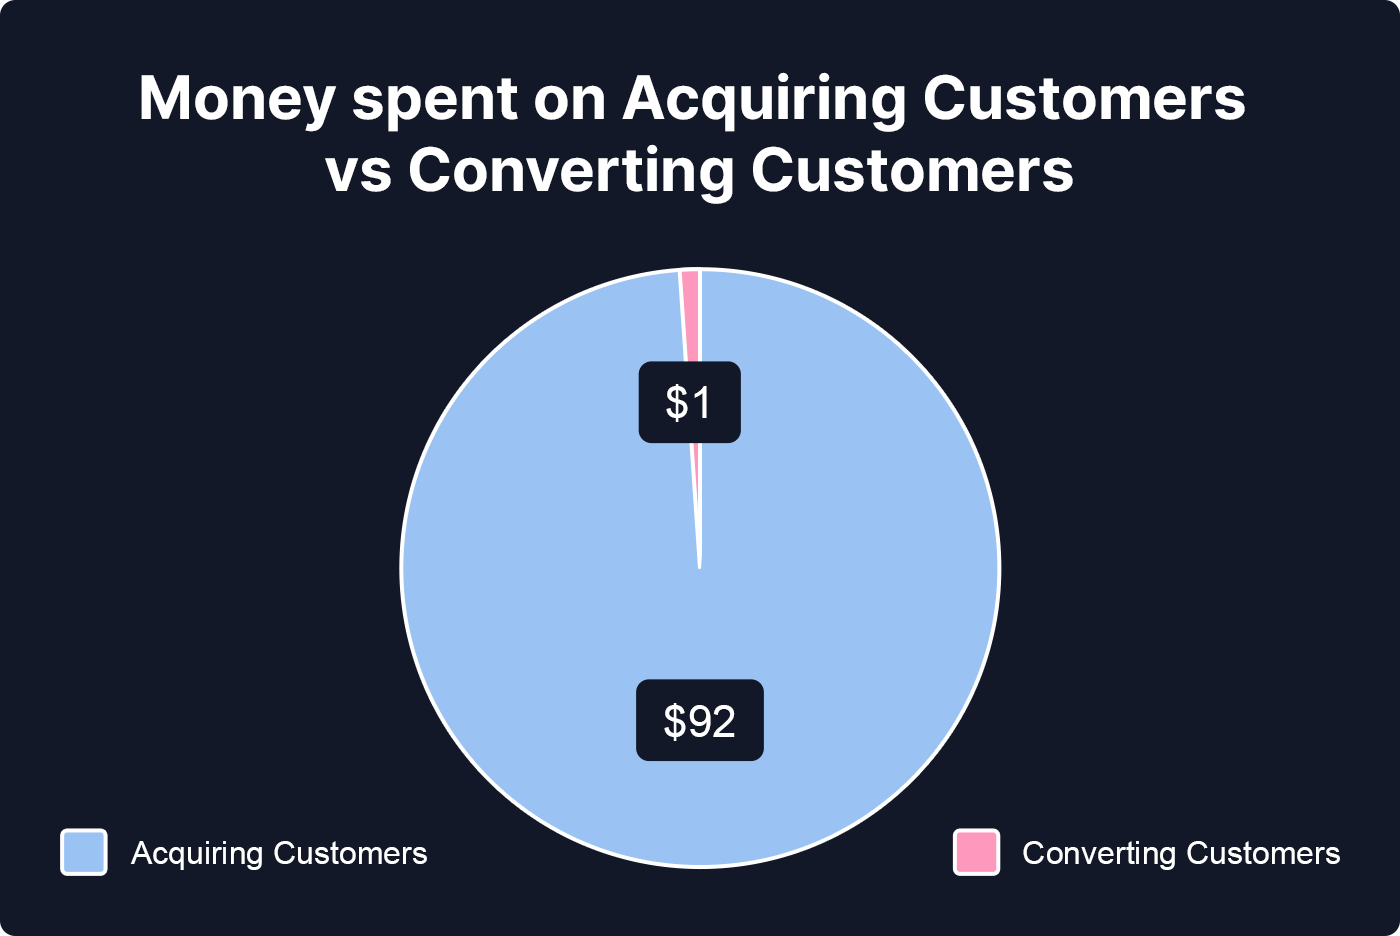 Chart to show Money spent on Acquiring Customers vs Converting Customers